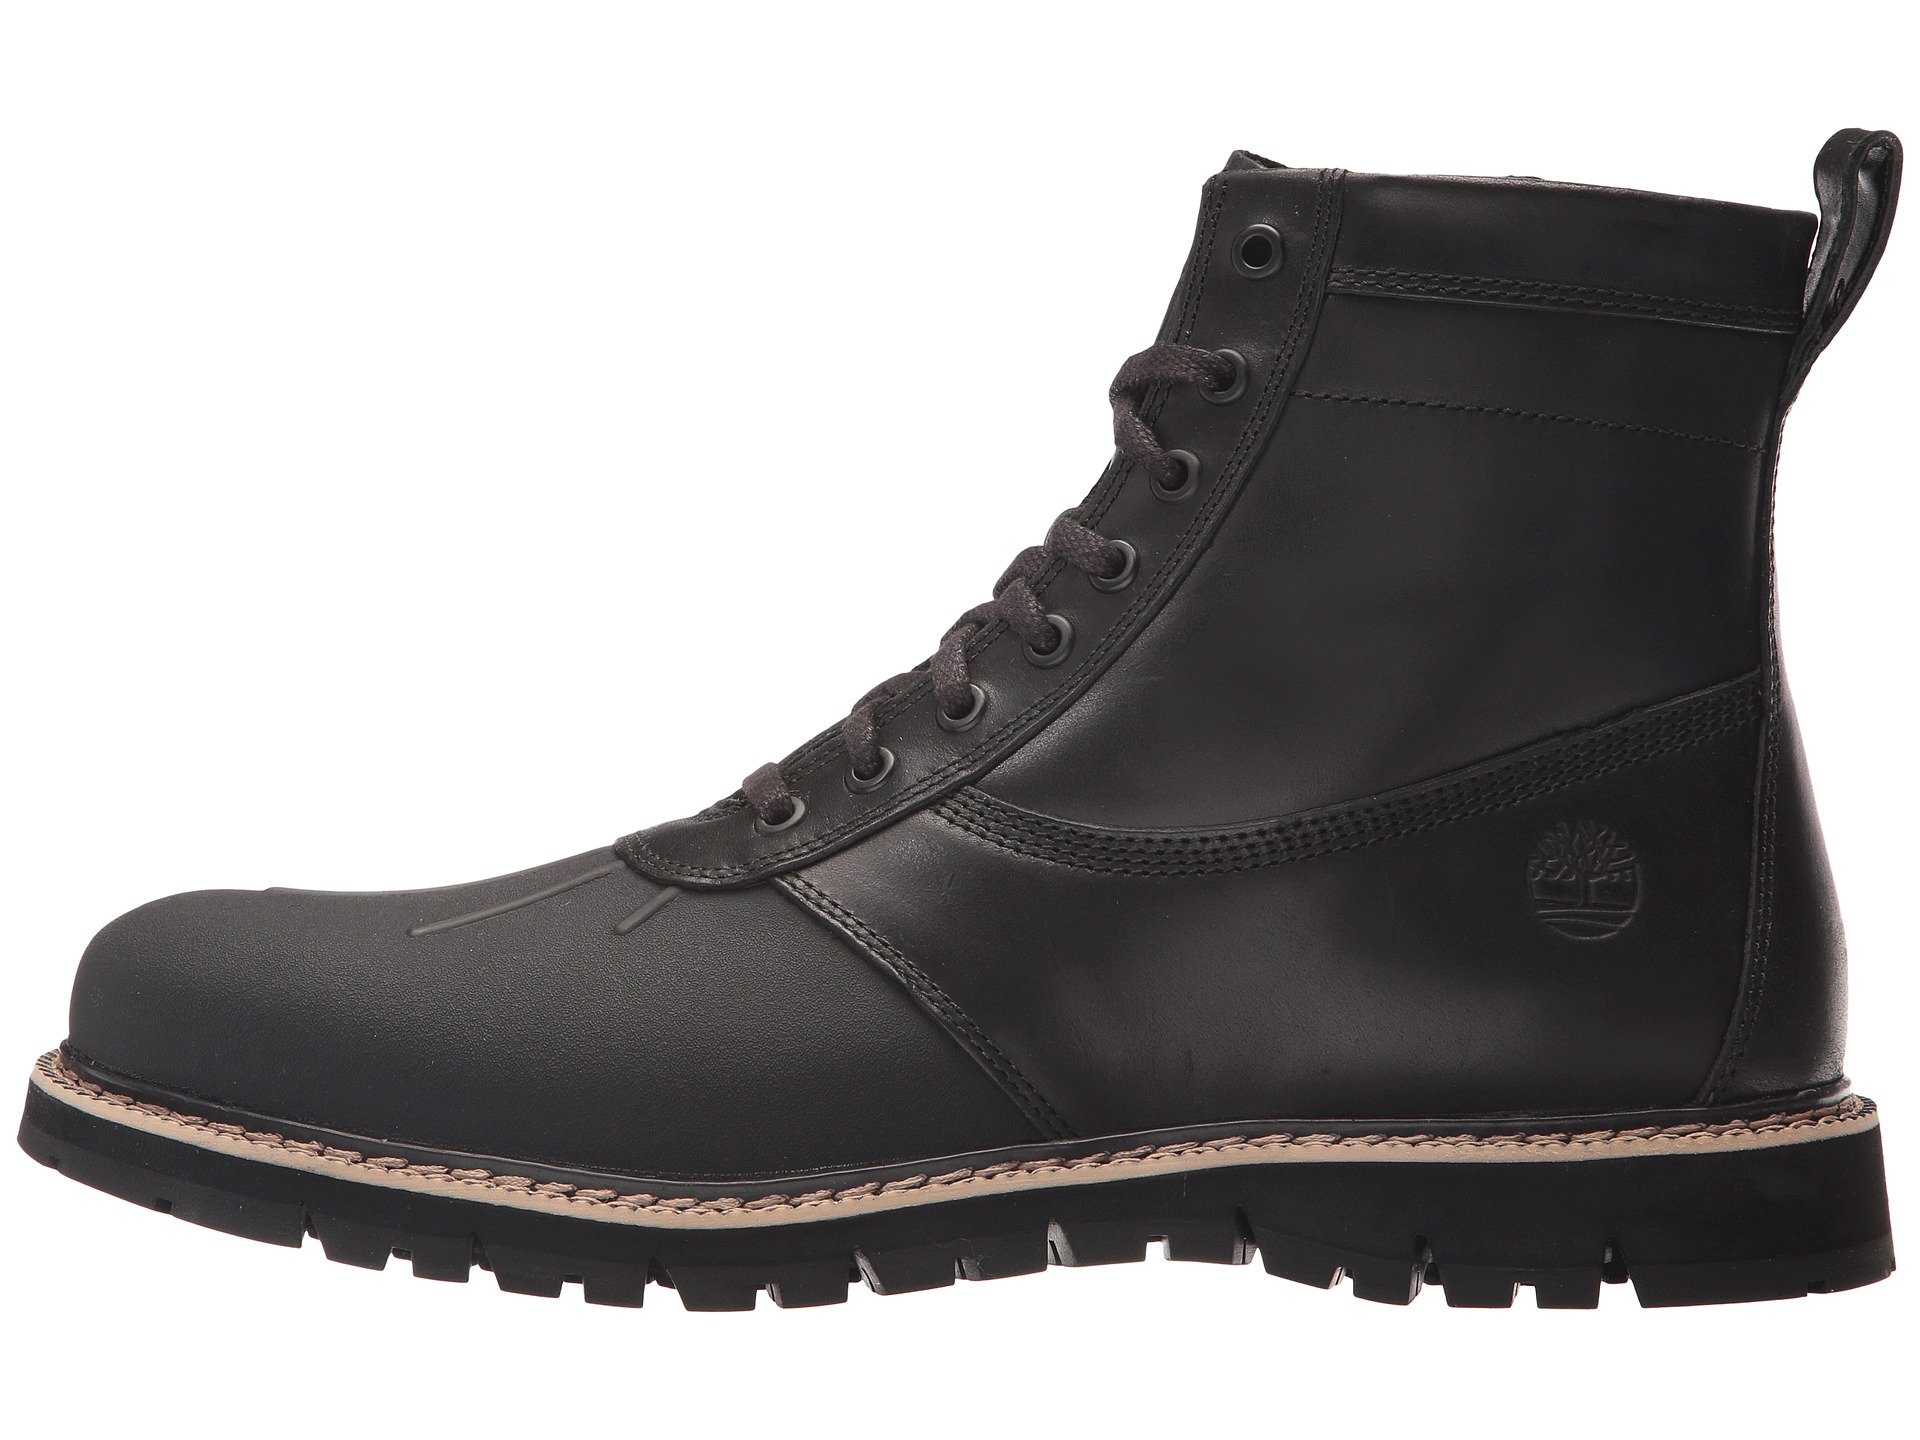 timberland britton hill rubber toe boot at 6pm. Black Bedroom Furniture Sets. Home Design Ideas